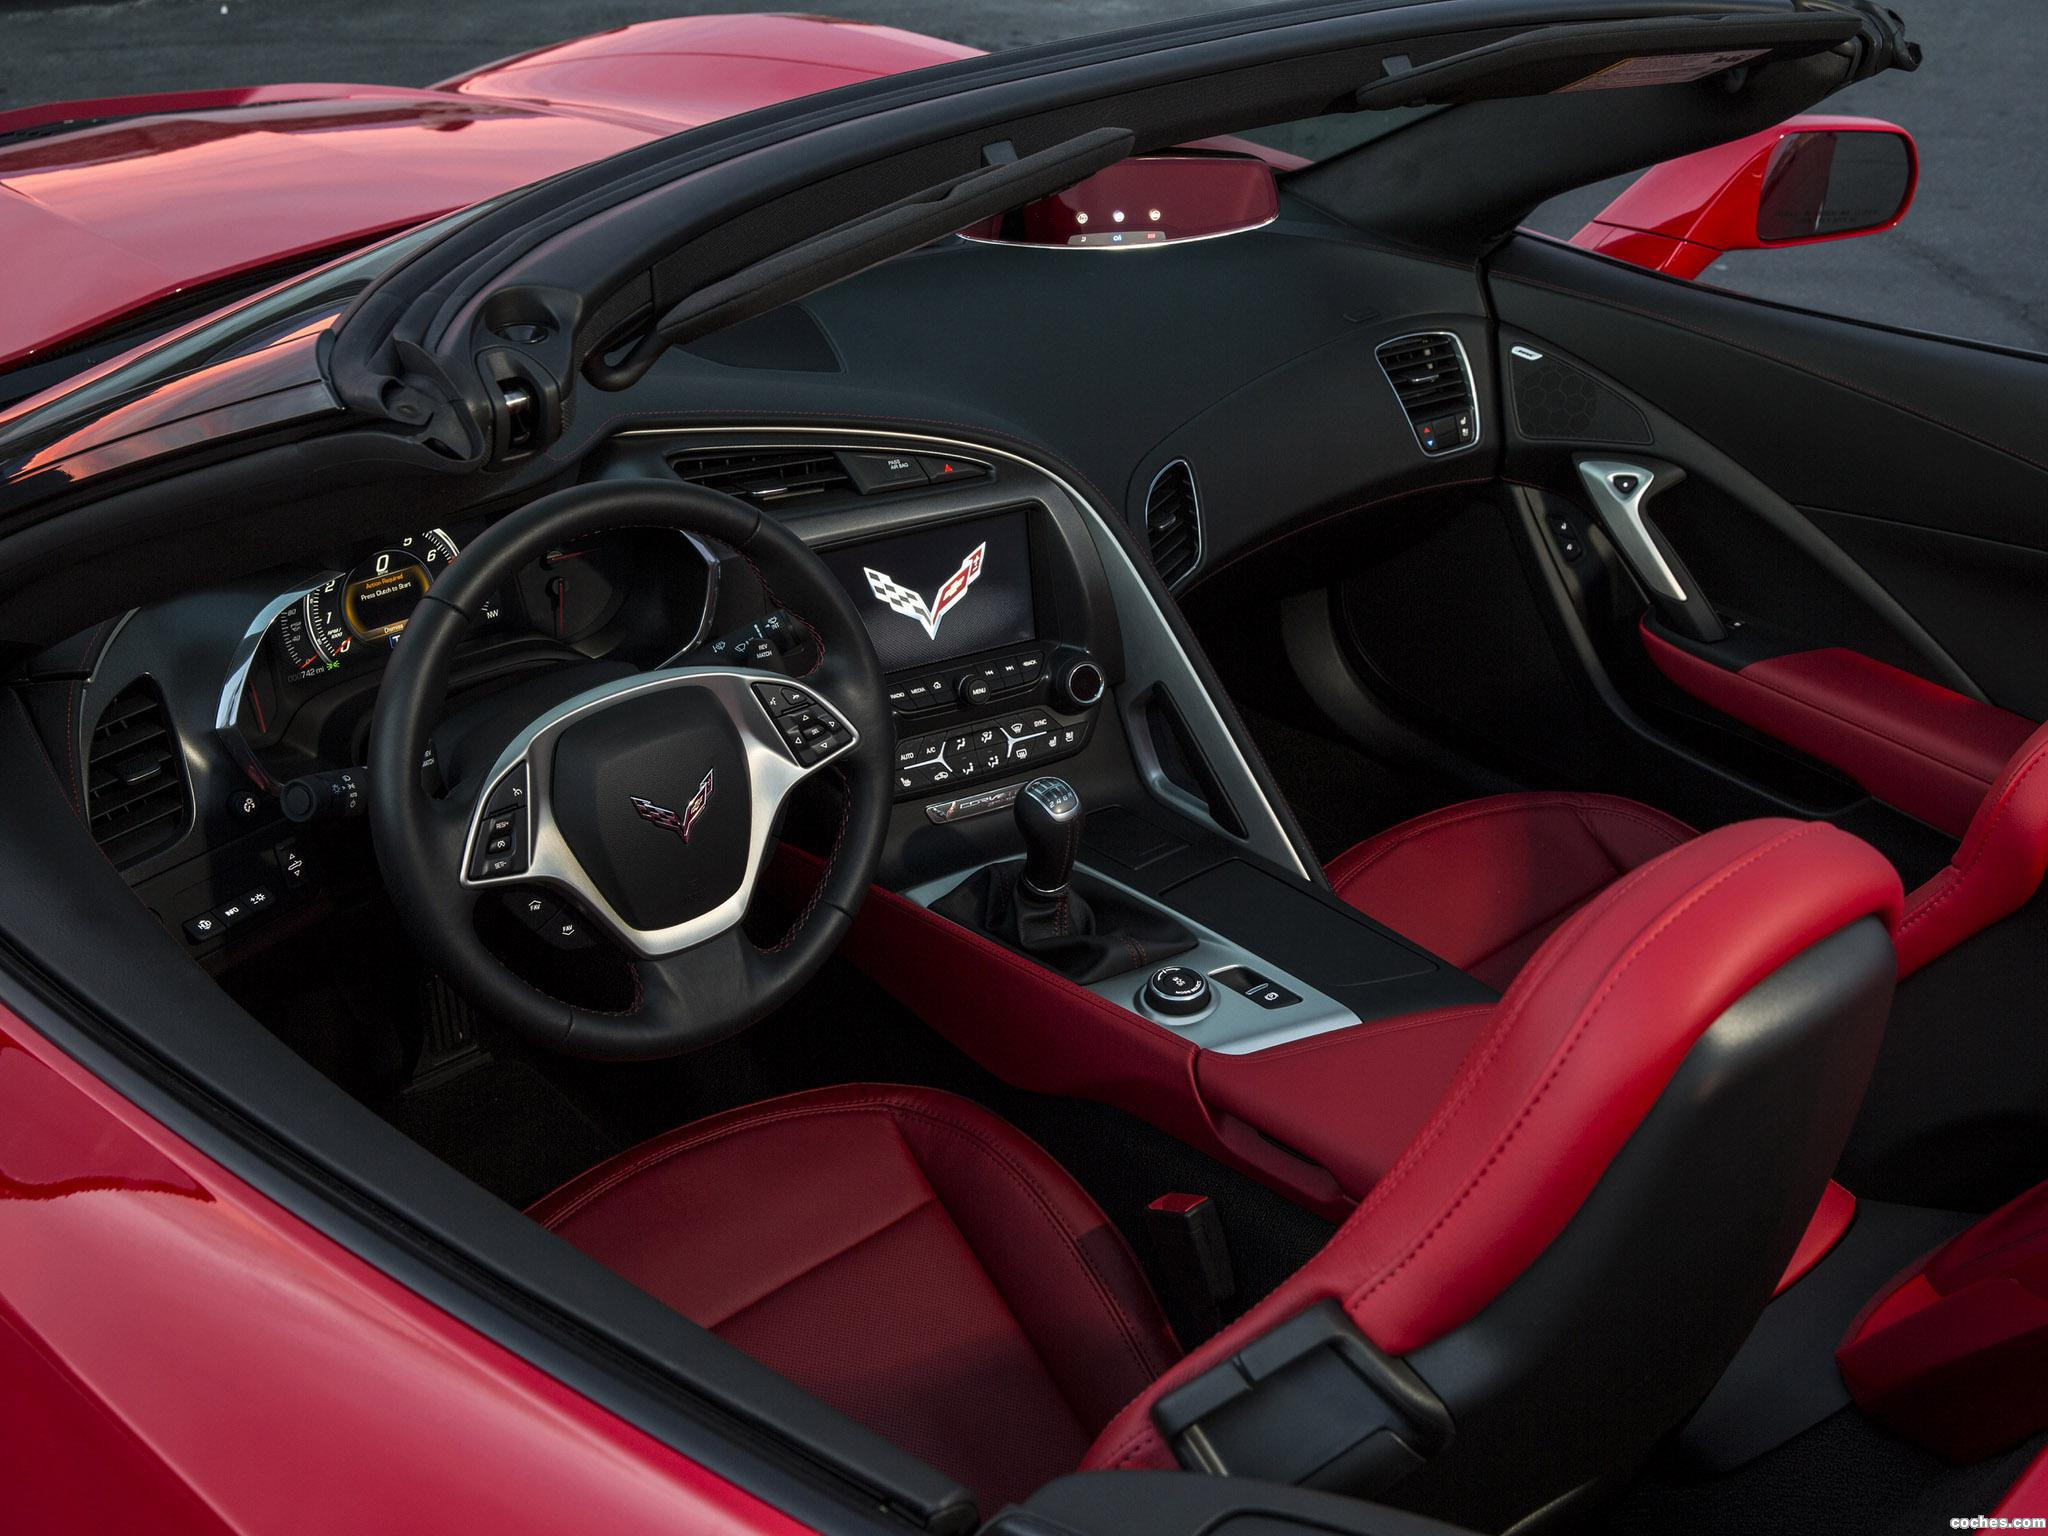 Foto 13 de Chevrolet Corvette Stingray Convertible C7 2013